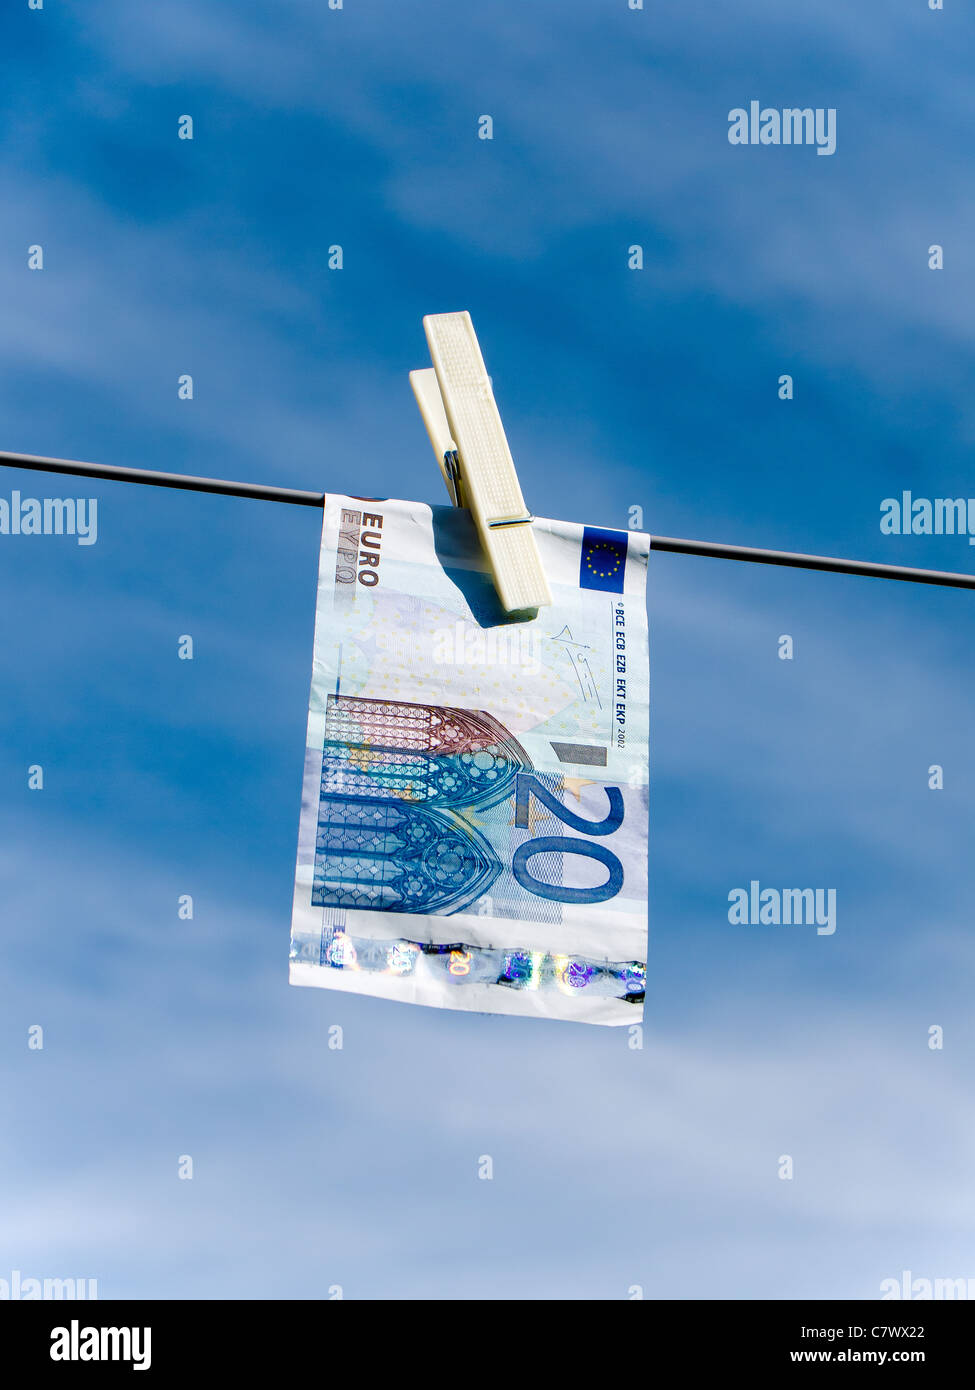 Concept representing money laundering Euro 20 note pegged on a washing line - Stock Image